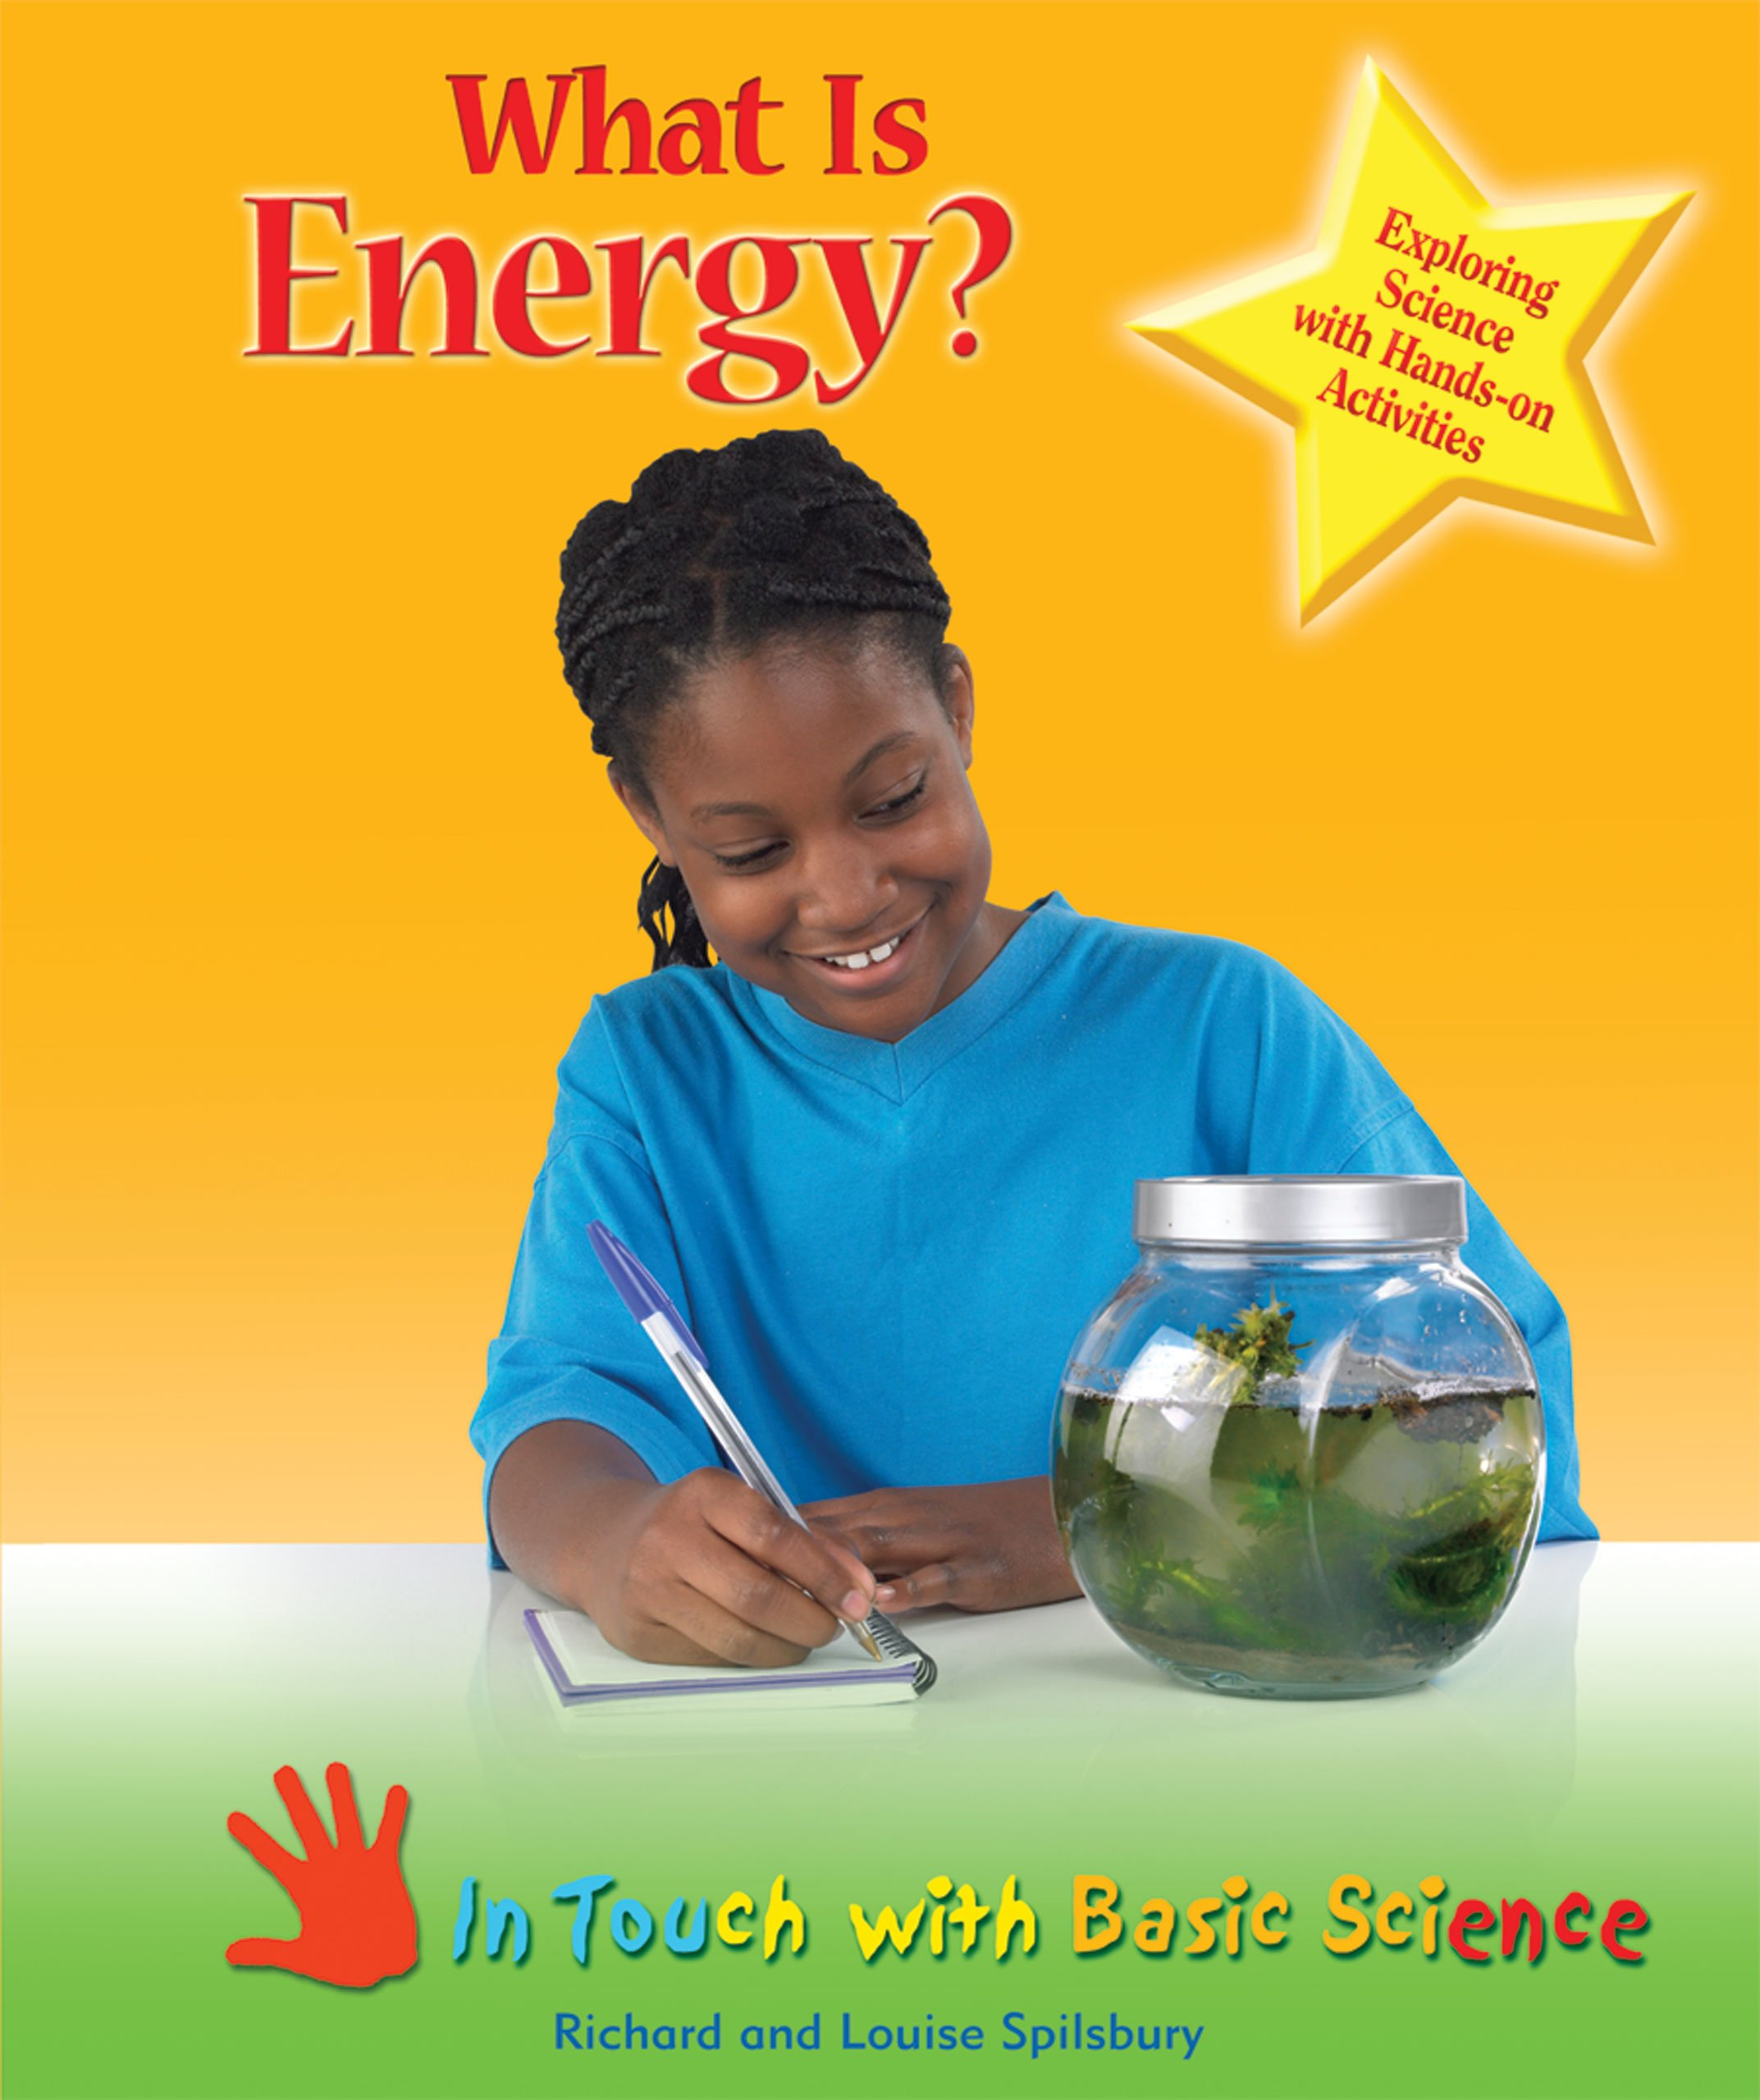 What Is Energy?: Exploring Science with Hands-On Activities (In Touch with Basic Science) ebook